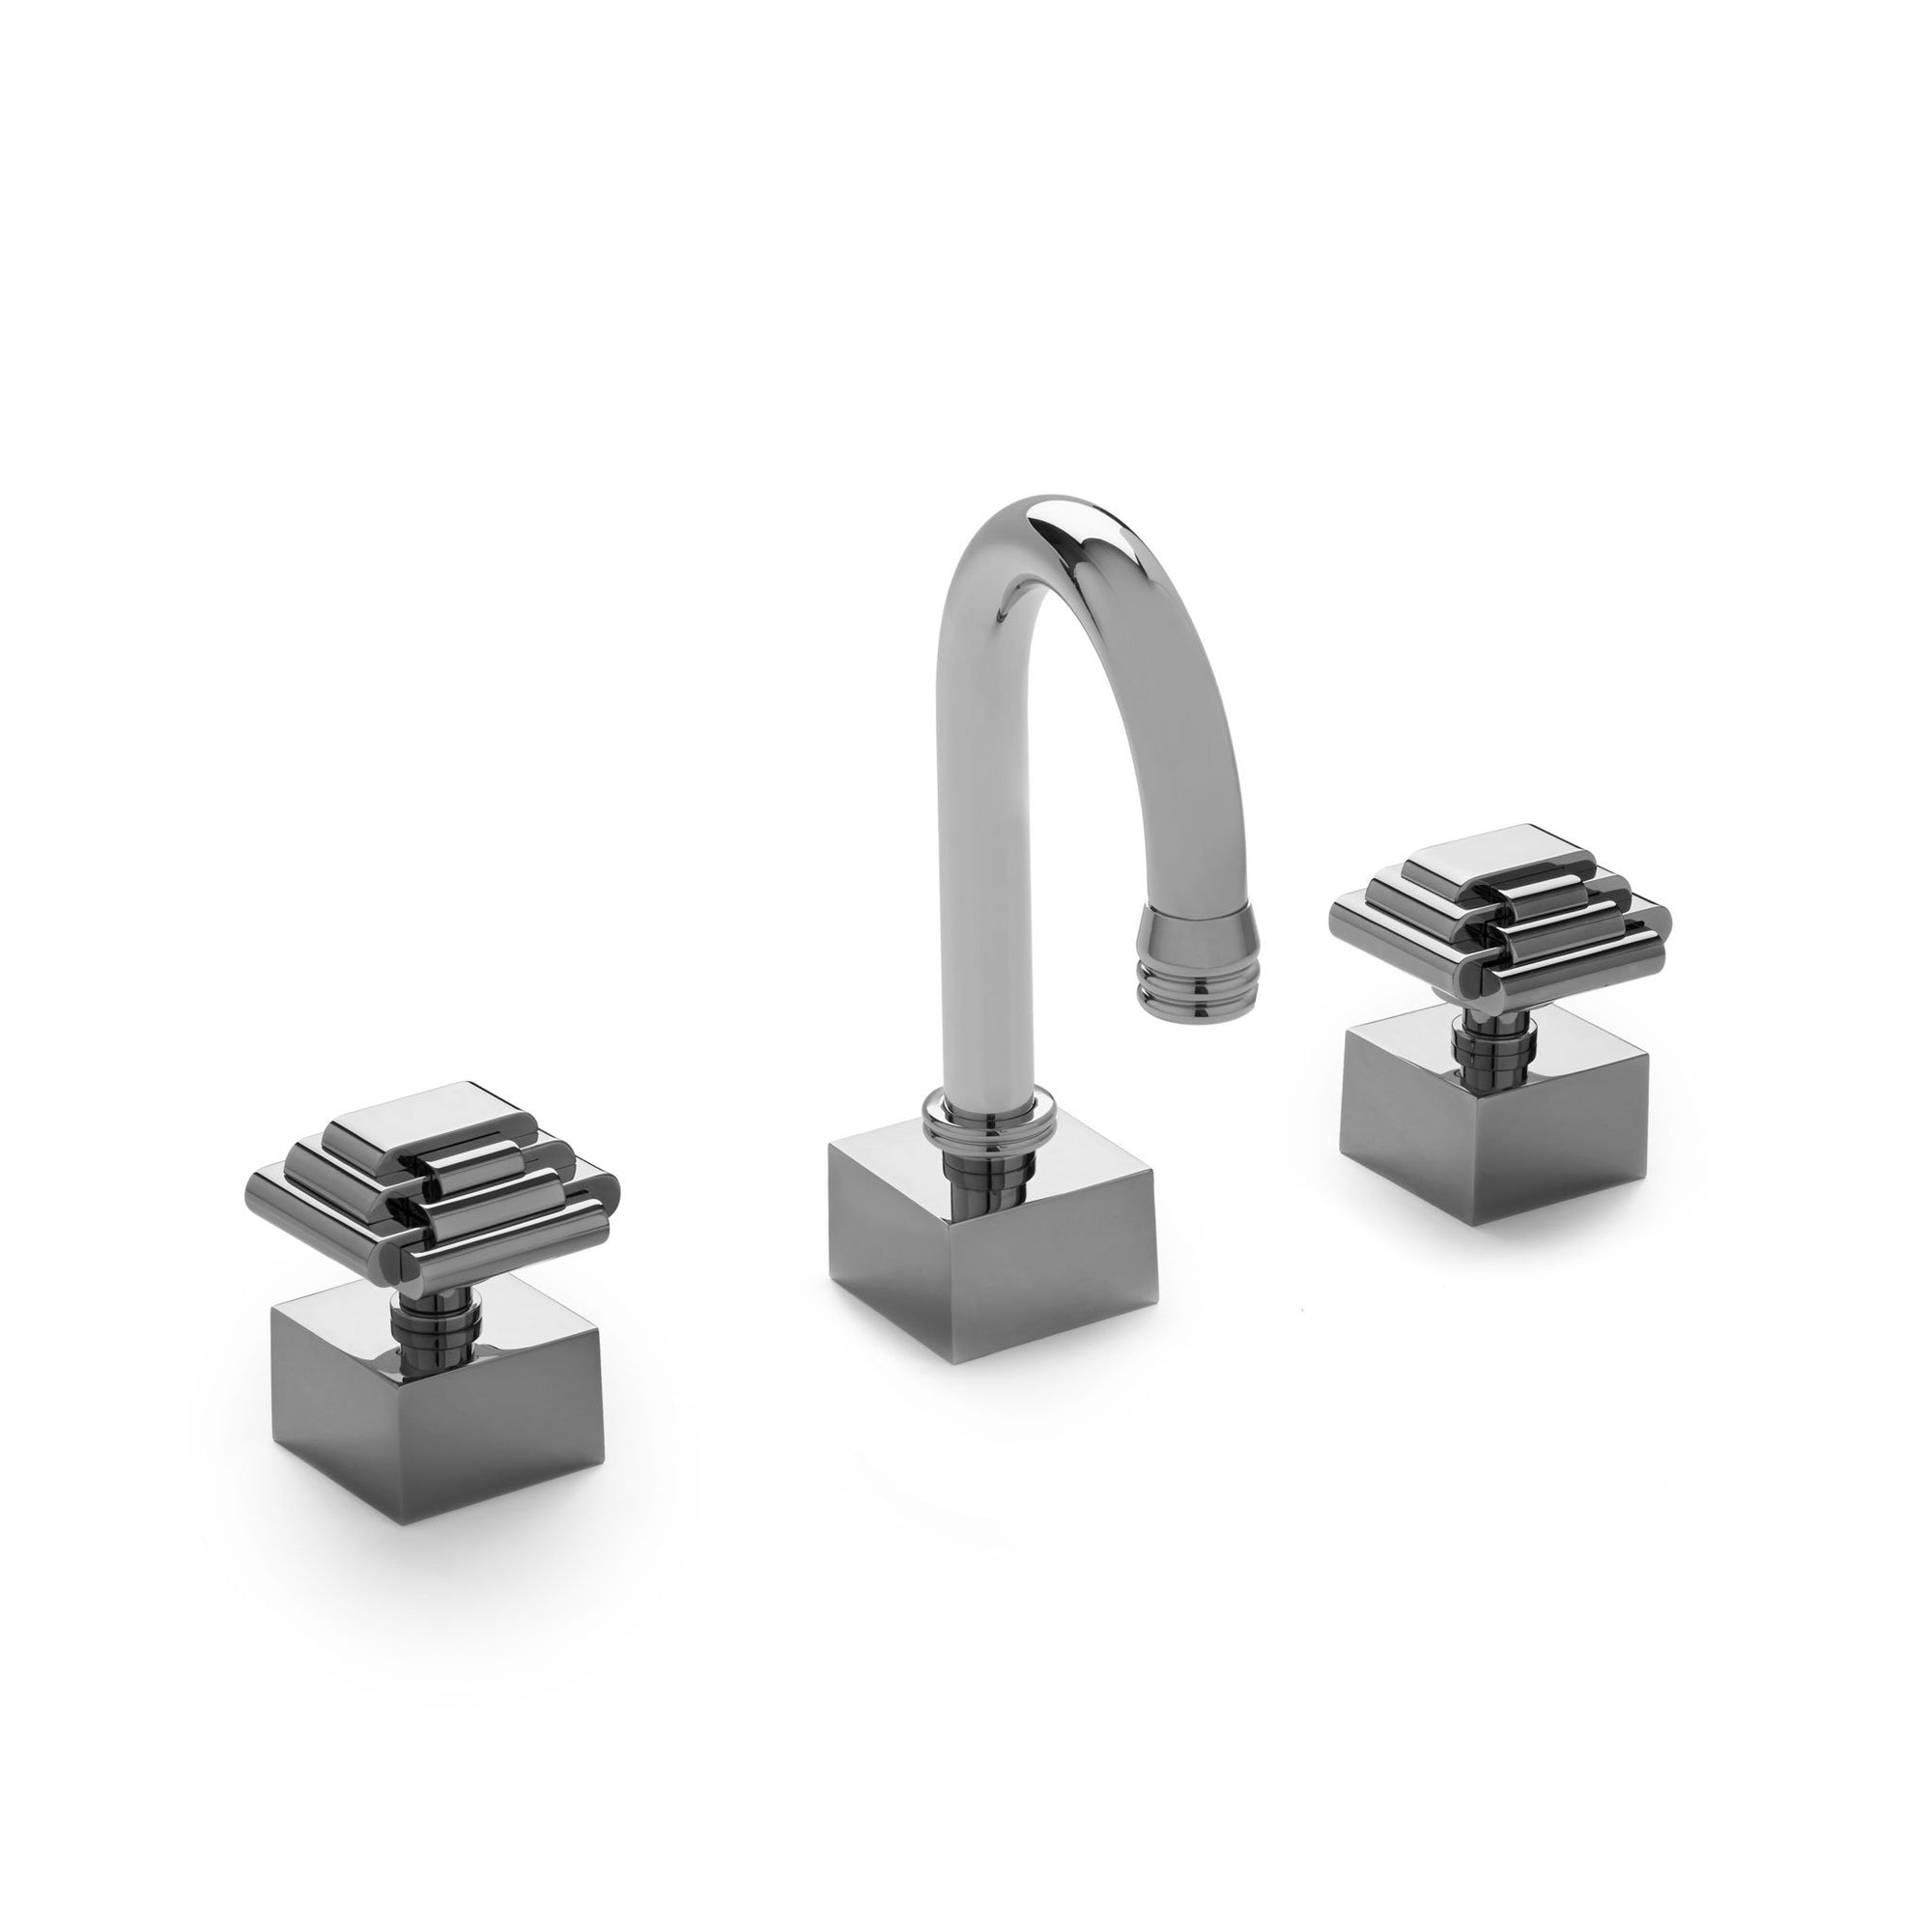 2015BAR800-CP Sherle Wagner International Arco with Nouveau Knob Bar Set in Polished Chrome metal finish